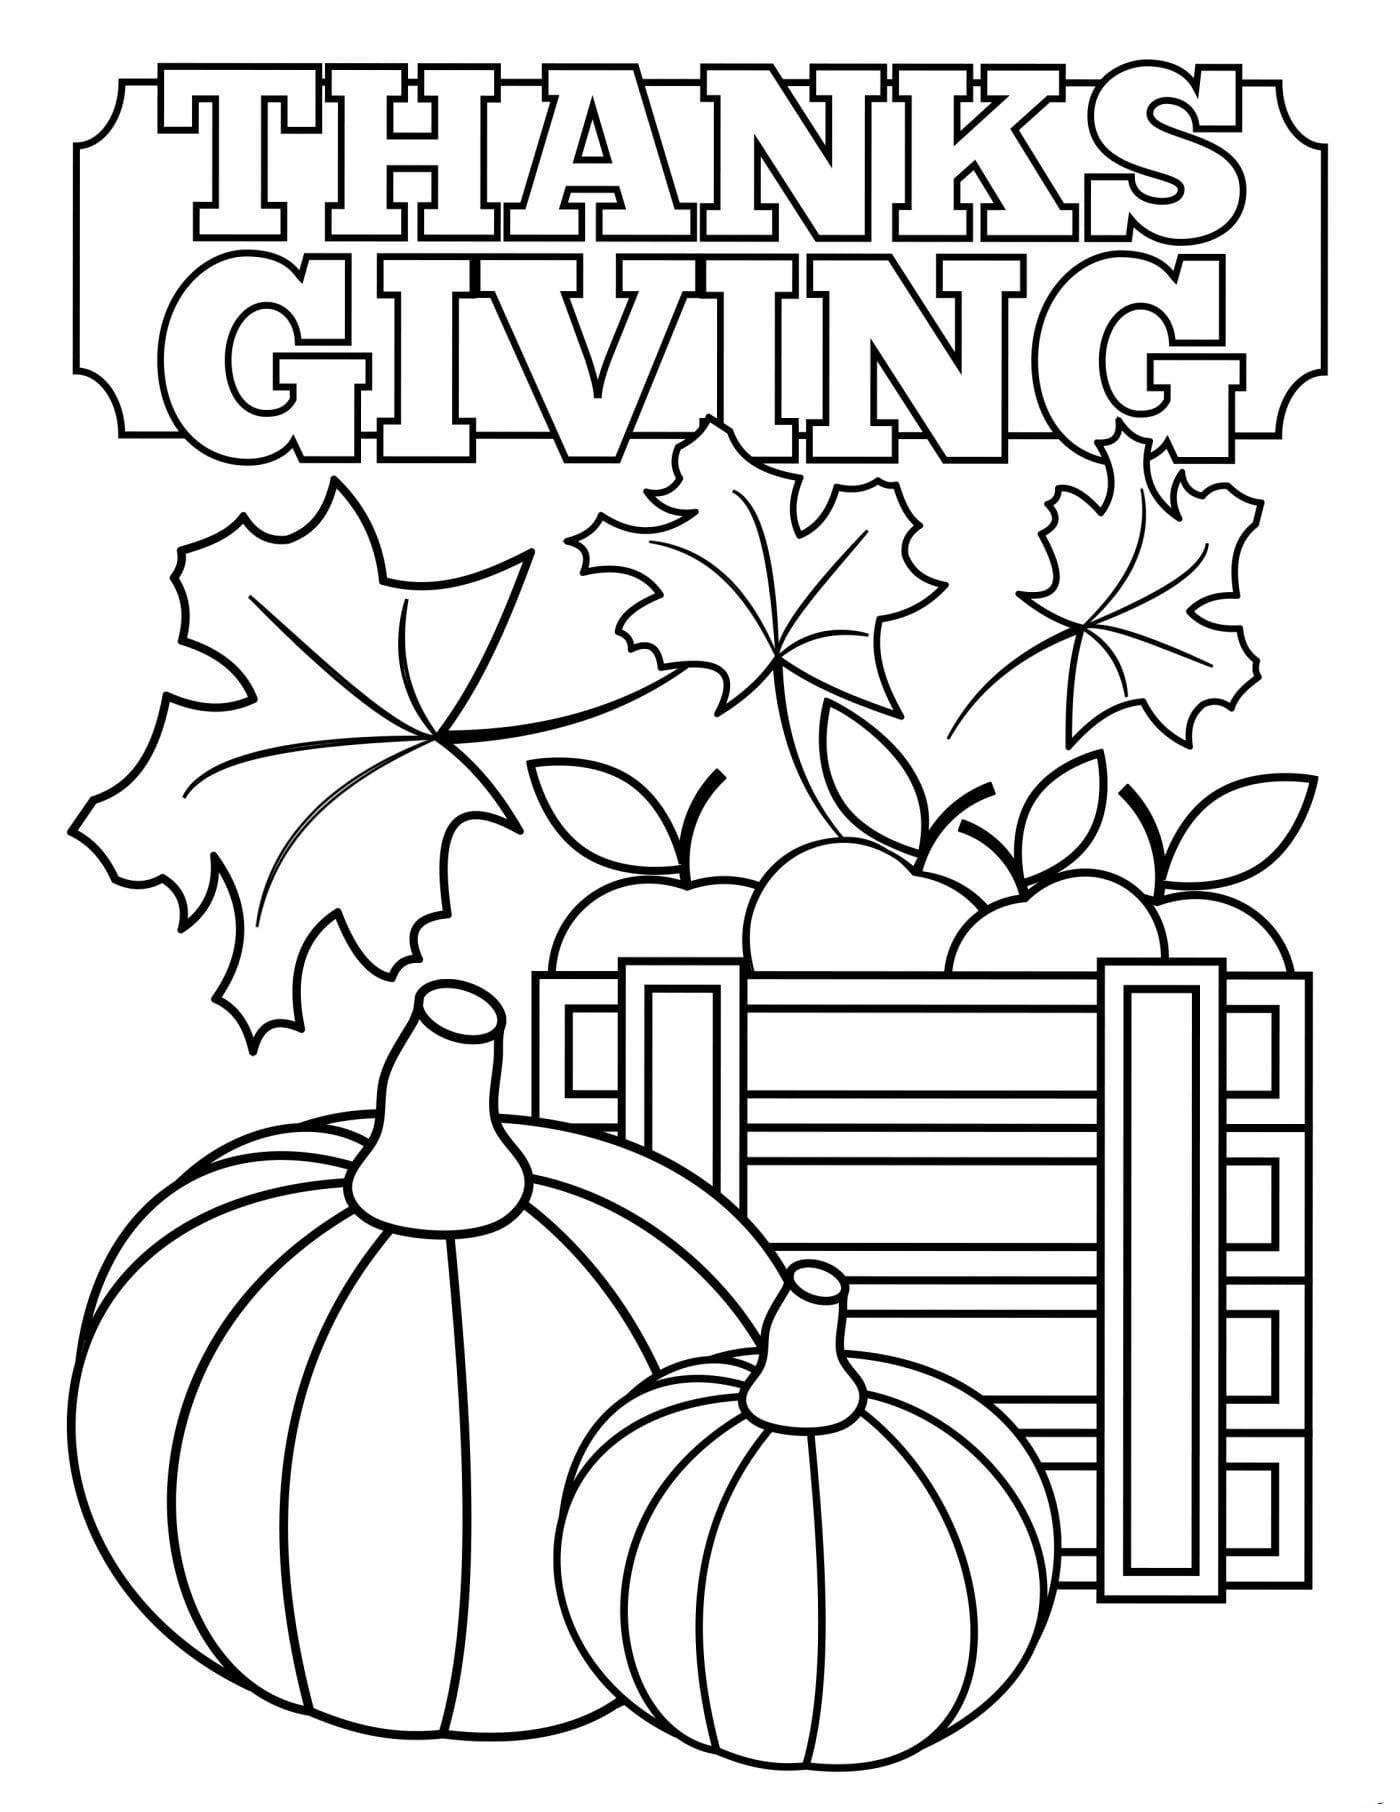 thanksgiving day coloring pages thanksgiving day coloring pages for childrens printable coloring thanksgiving pages day